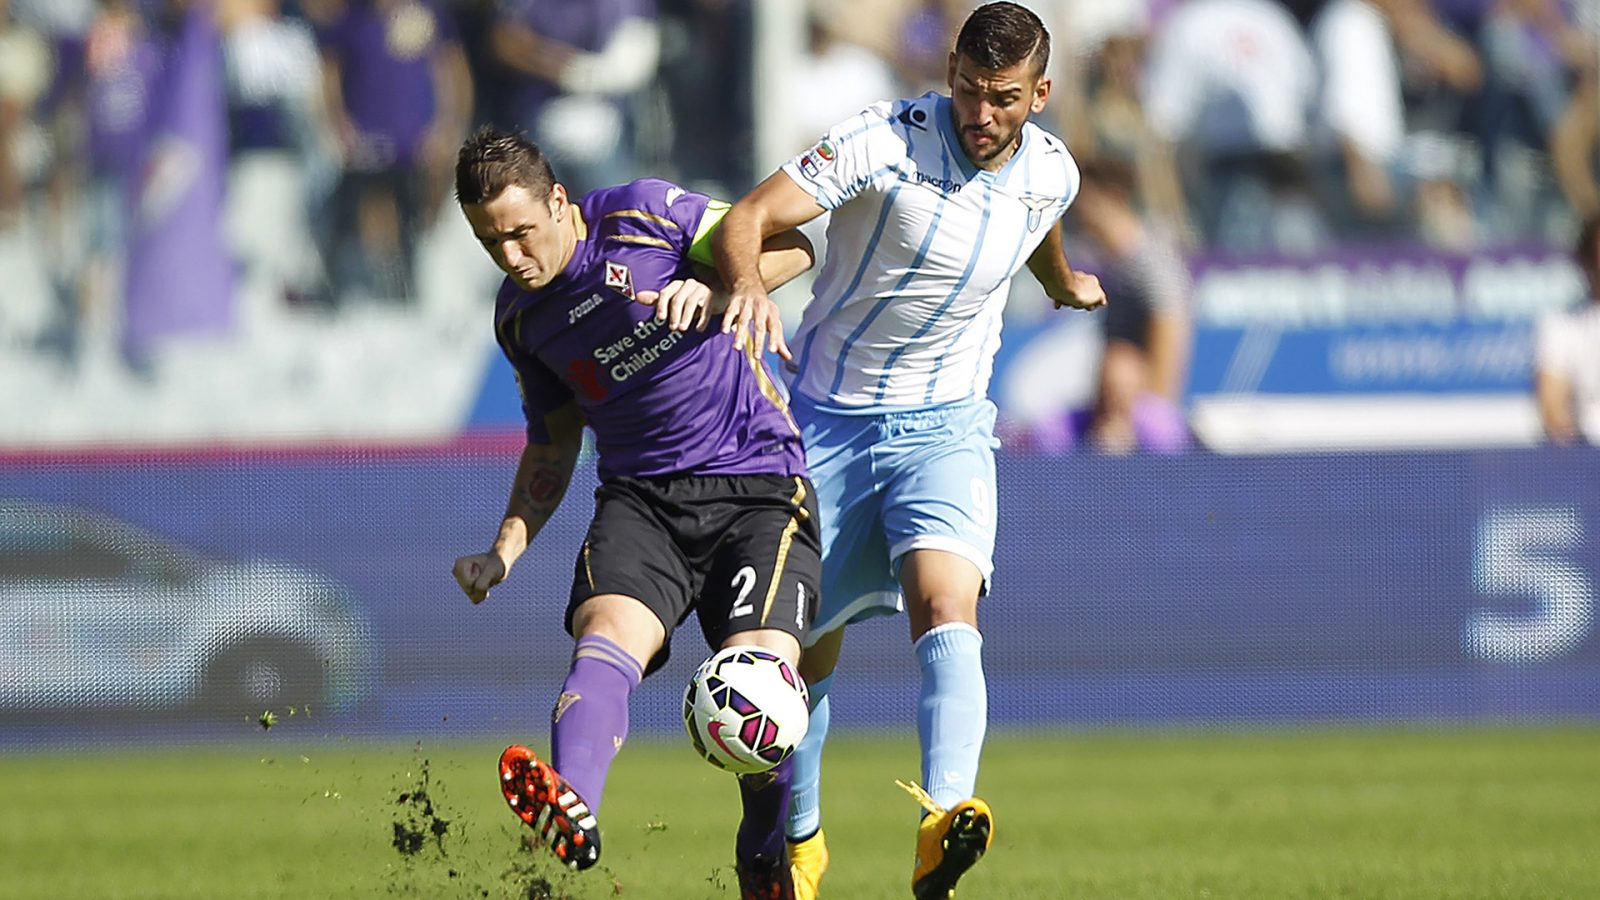 FLORENCE, ITALY - OCTOBER 19: Gonzalo Rodriguez of ACF Fiorentina fights for the ball with Filip Djordjevic of SS Lazio during the Serie A match between ACF Fiorentina and SS Lazio at Stadio Artemio Franchi on October 19, 2014 in Florence, Italy. (Photo by Gabriele Maltinti/Getty Images)